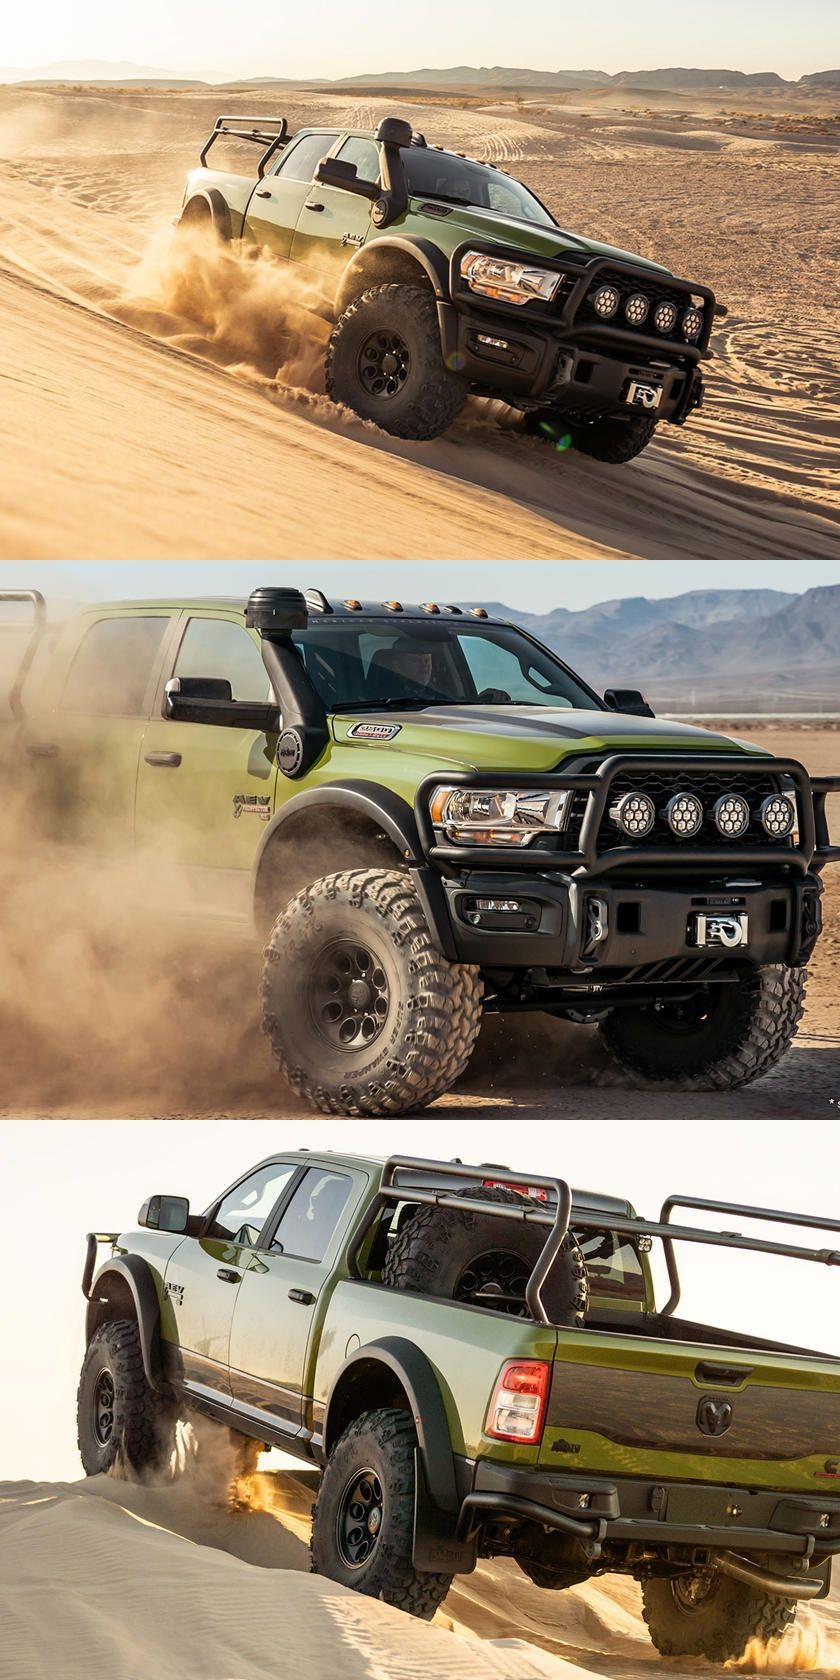 Ram 2500 Heavy Duty Becomes Ultimate Offroad Warrior The 2020 Ram Hd Based Aev Prospector Xl Has Been Priced In 2020 Trucks Dodge Trucks Ram Offroad Trucks